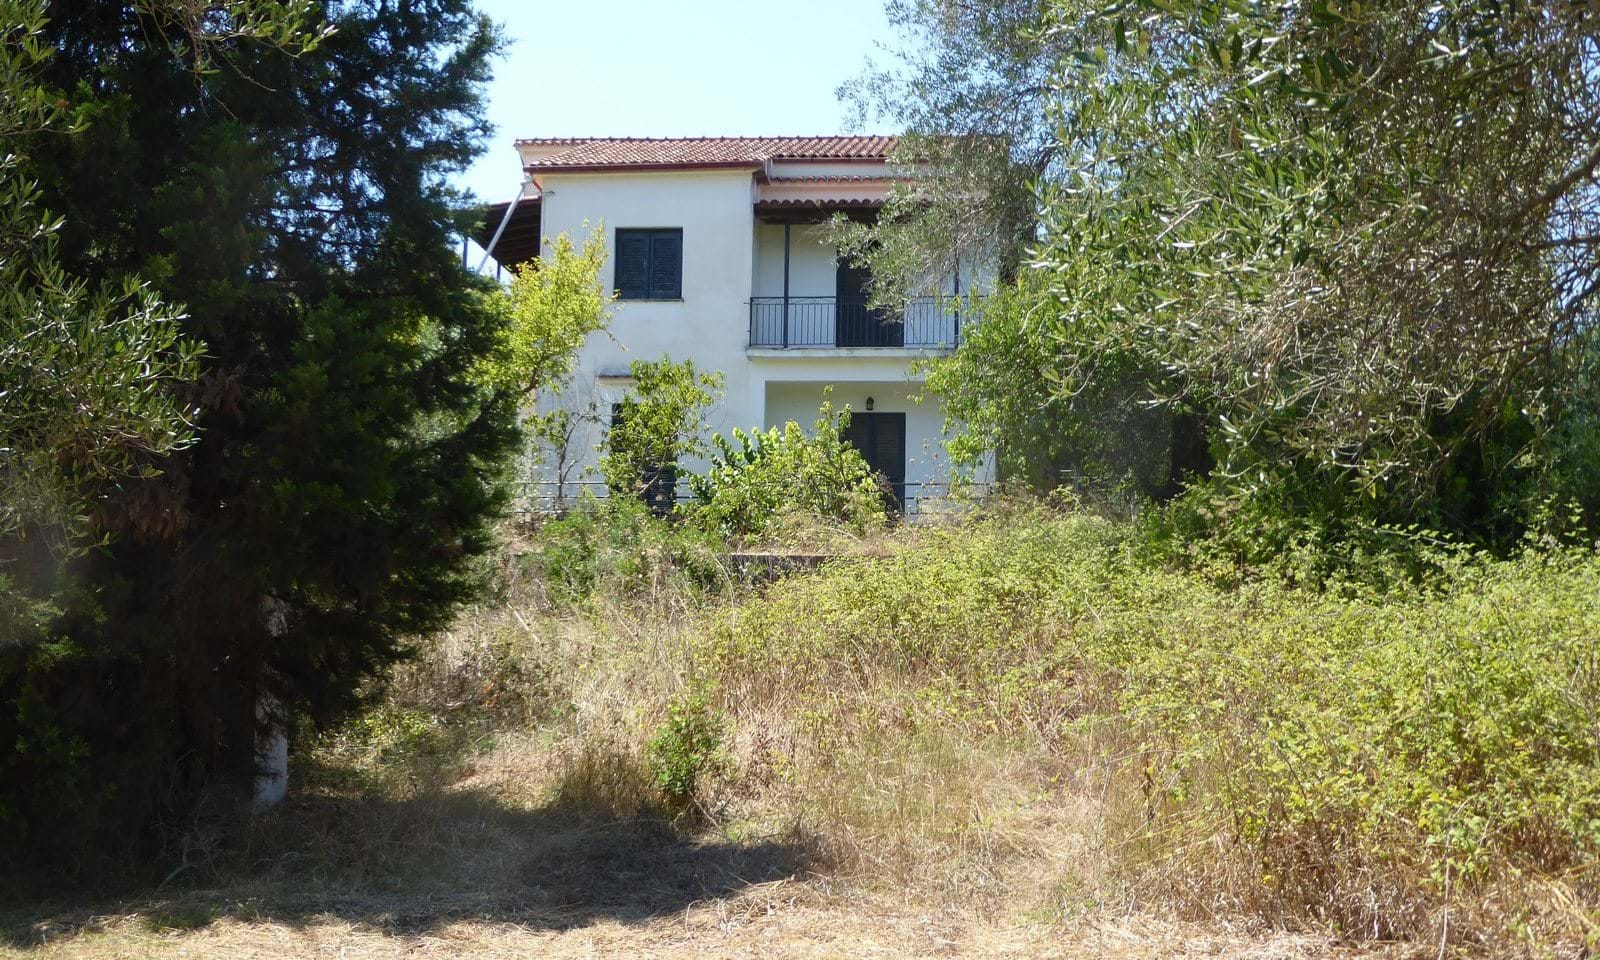 Dassia property for sale in Corfu